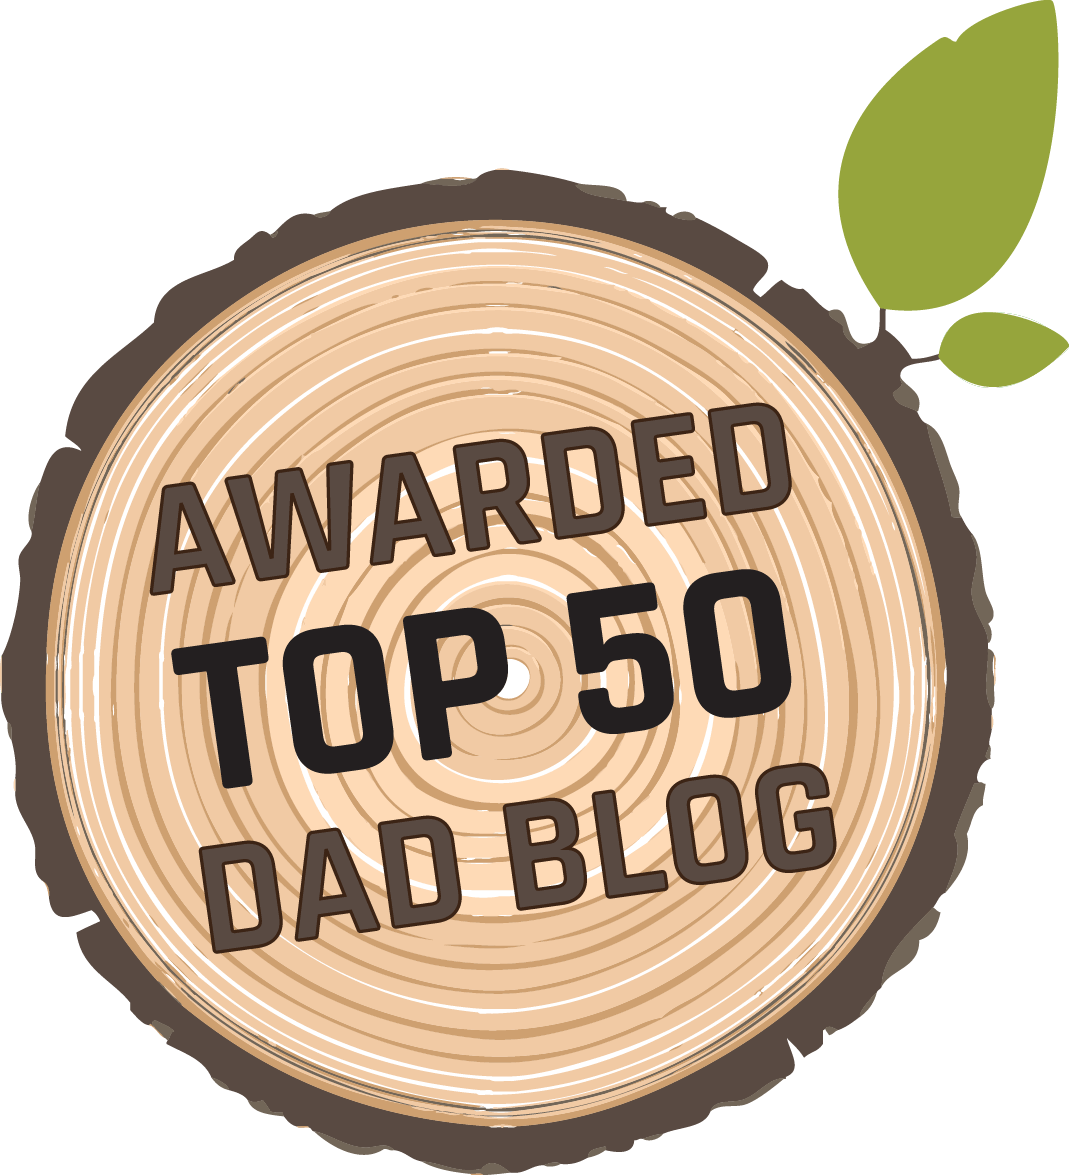 5 Best Websites For Dads To Help Raise Better Kids